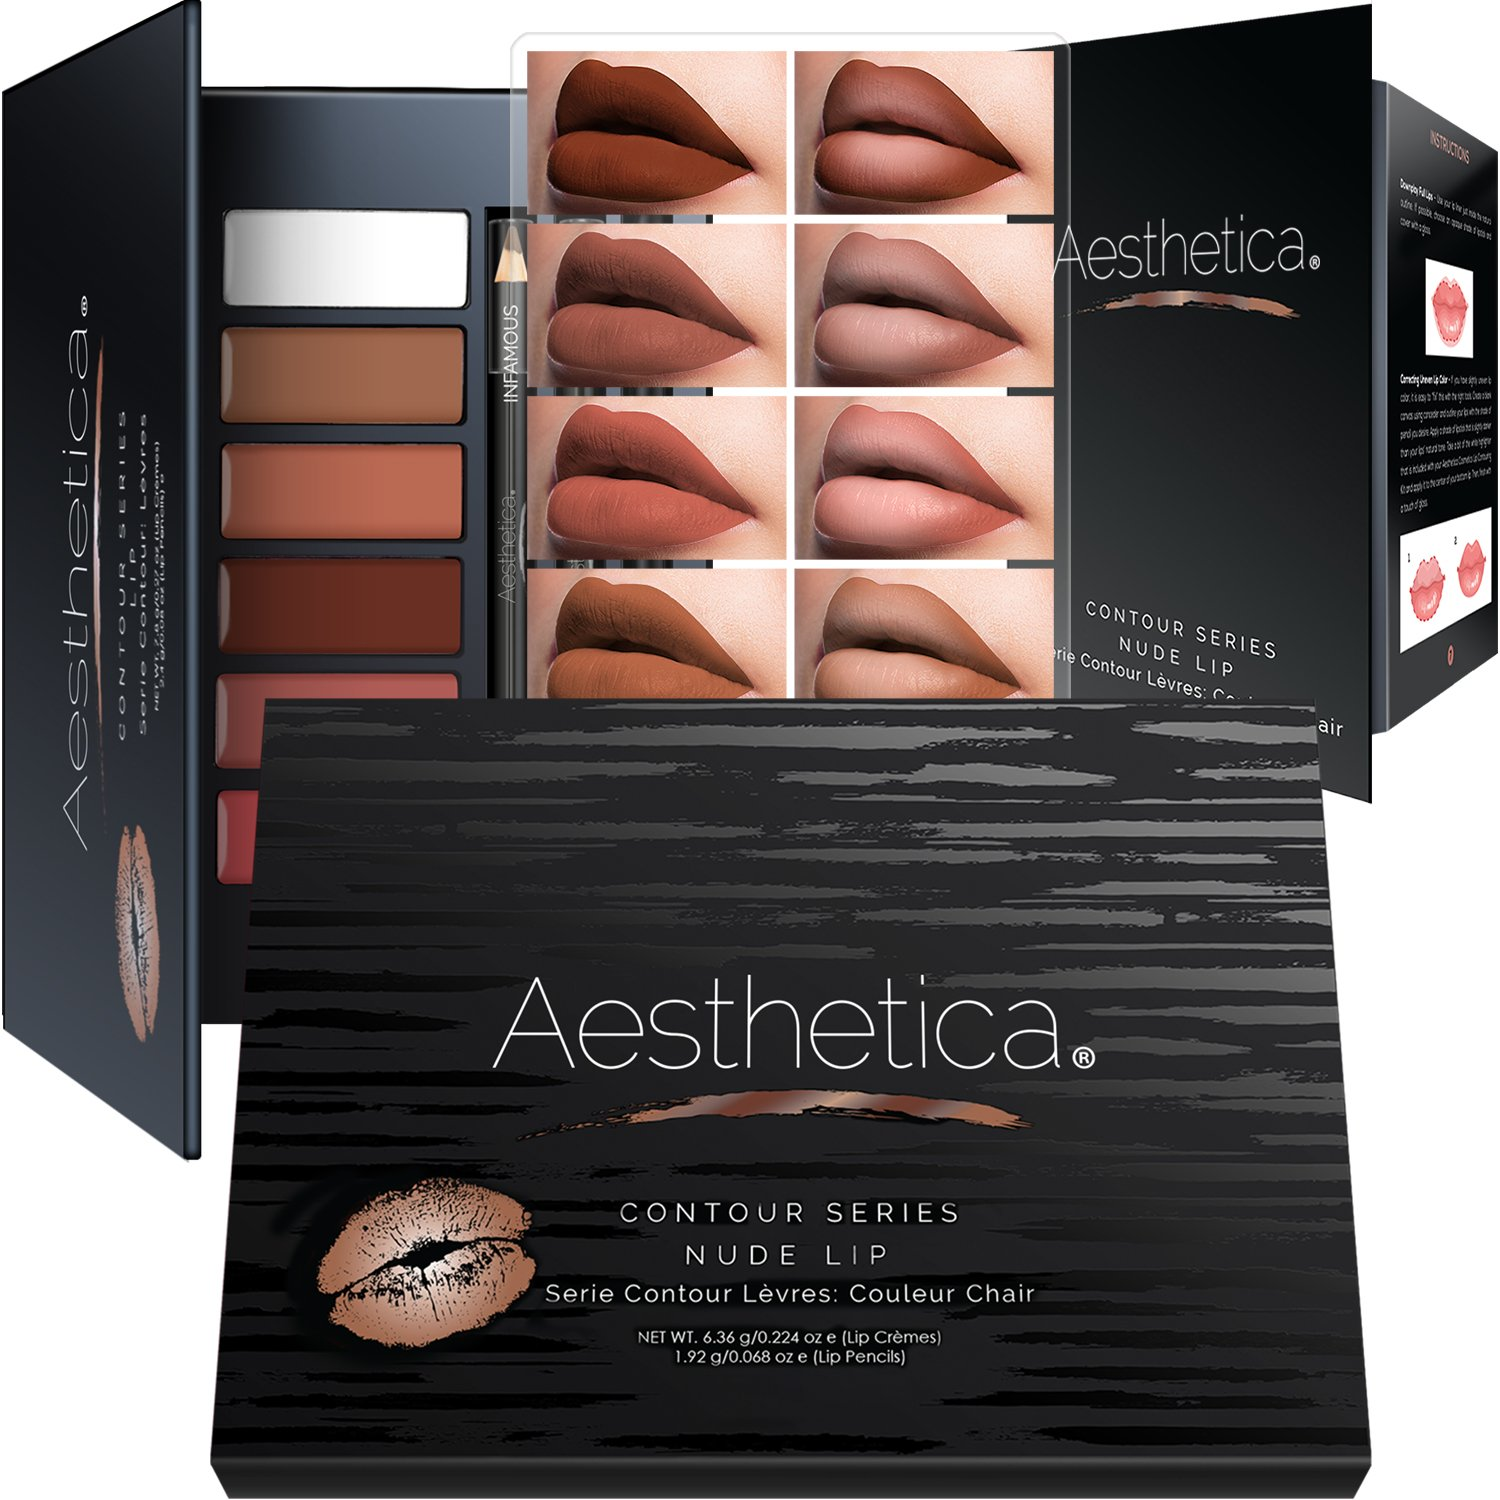 Aesthetica Nude Lip Contour Kit - Contouring and Highlighting Matte Lipstick Palette Set - Includes Six Lip Crèmes, Four Lip Liners, Lip Brush and Step-by-Step Instructions - Vegan & Cruelty Free by Aesthetica